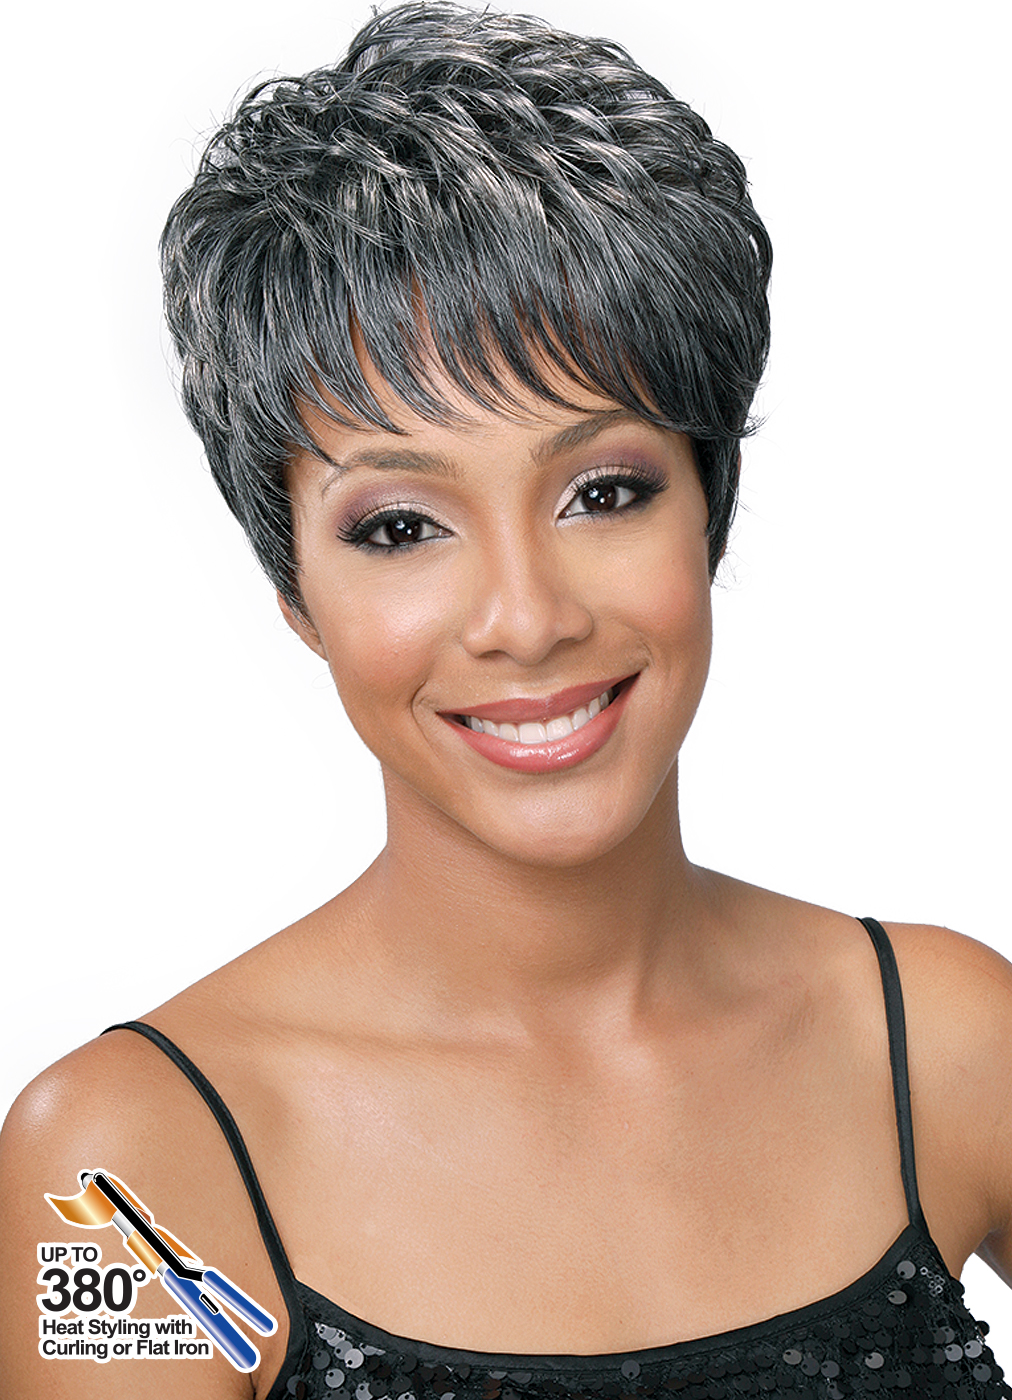 bobbi boss leading hair company bobbi boss leading hair ...